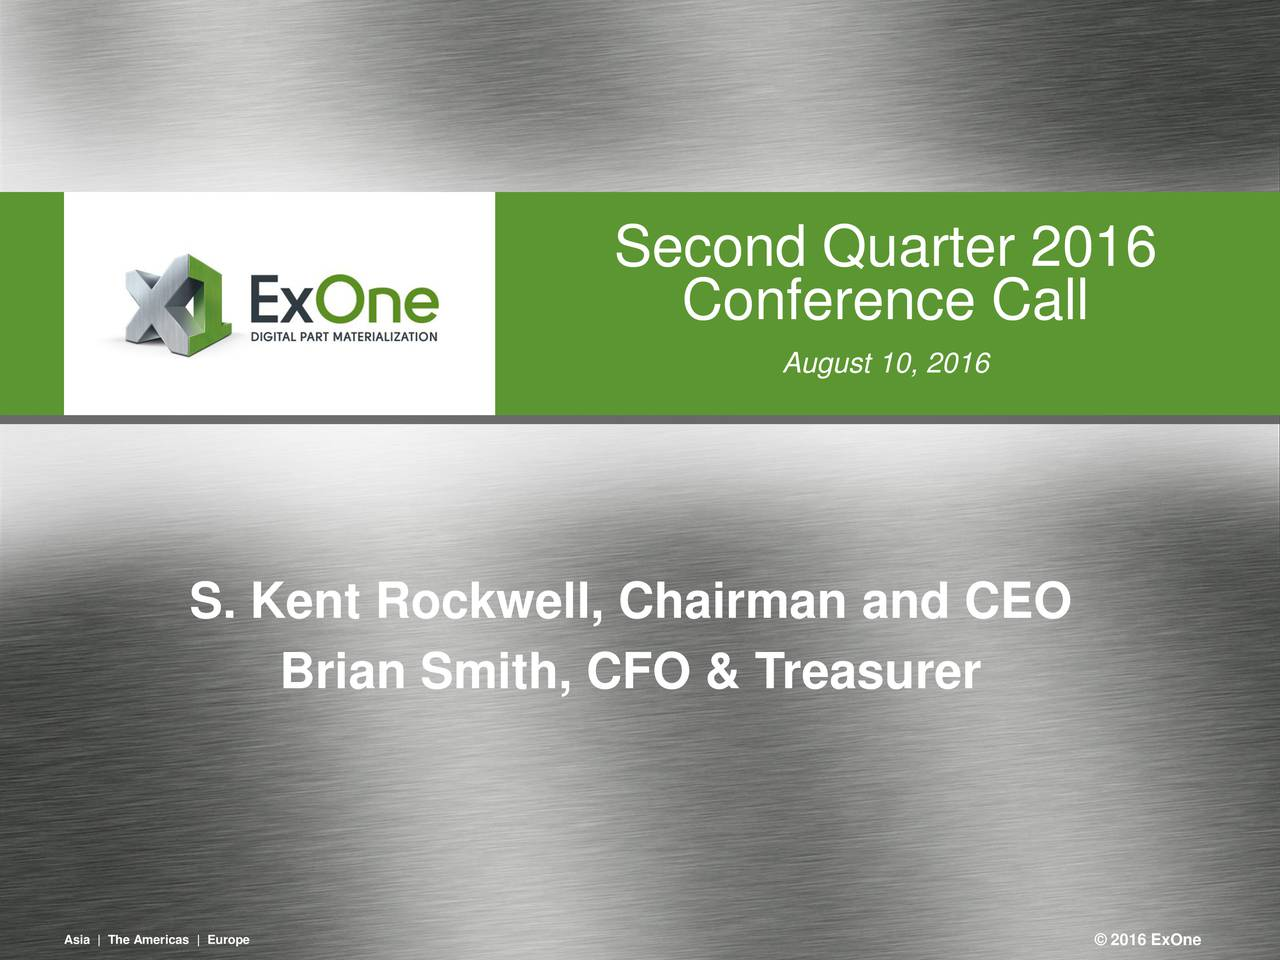 Conference Call August 10, 2016 S. Kent Rockwell, Chairman and CEO Brian Smith, CFO & Treasurer Asa TheAmeras |urpe 1 2016ExOnne